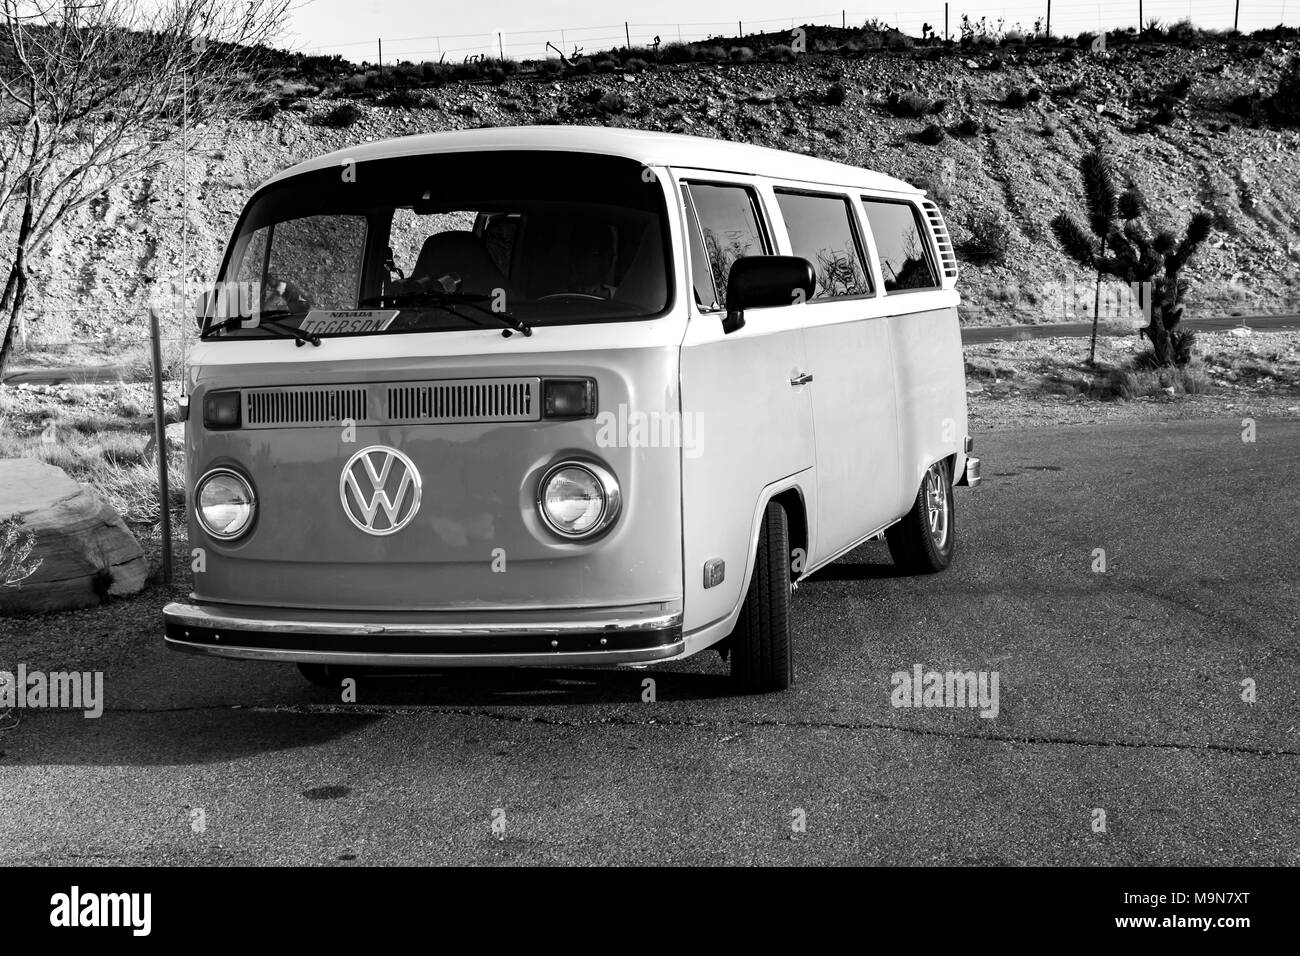 00d15c5217 Green Volkswagen Camper Van parked at Red Rock Canyon in the Mojave desert